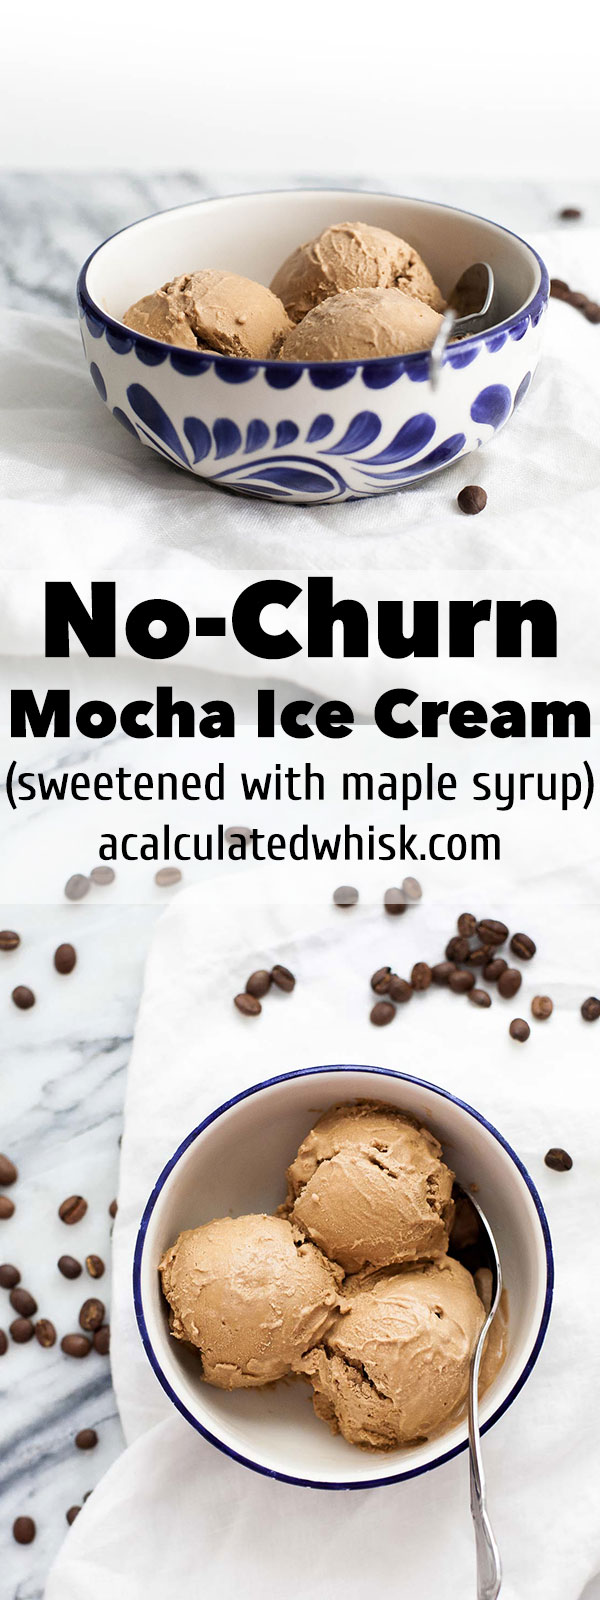 No-Churn Mocha Ice Cream (sweetened with maple syrup) | acalculatedwhisk.com